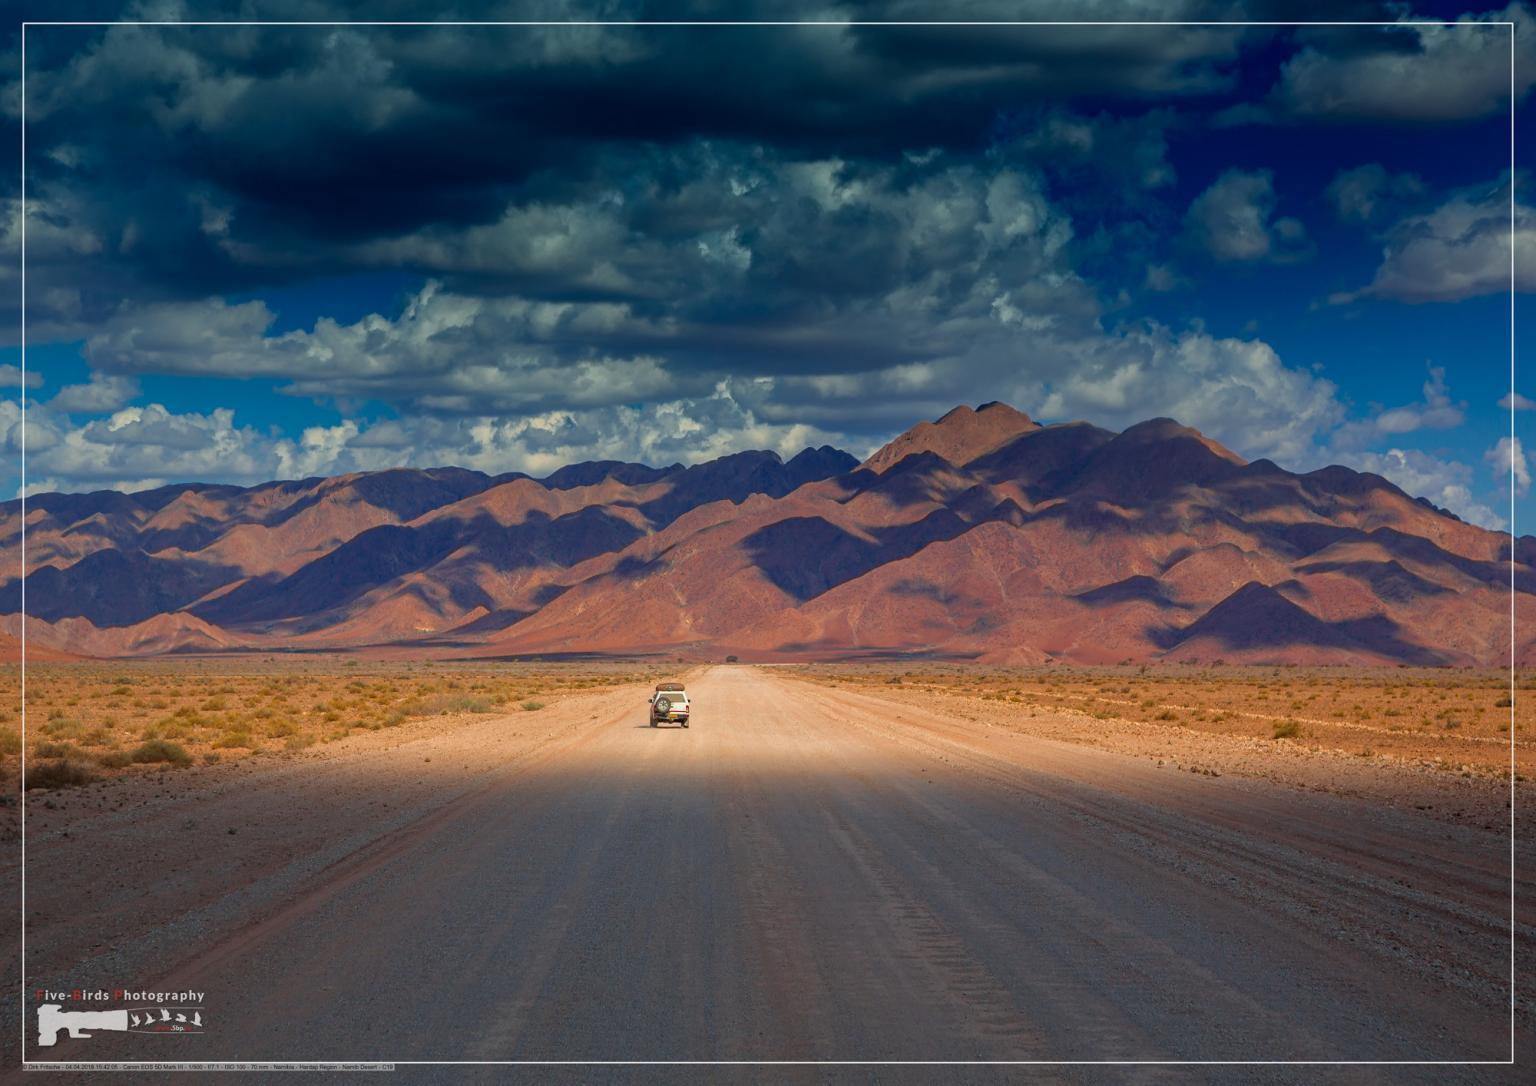 Dust road at the namib desert in Namibia